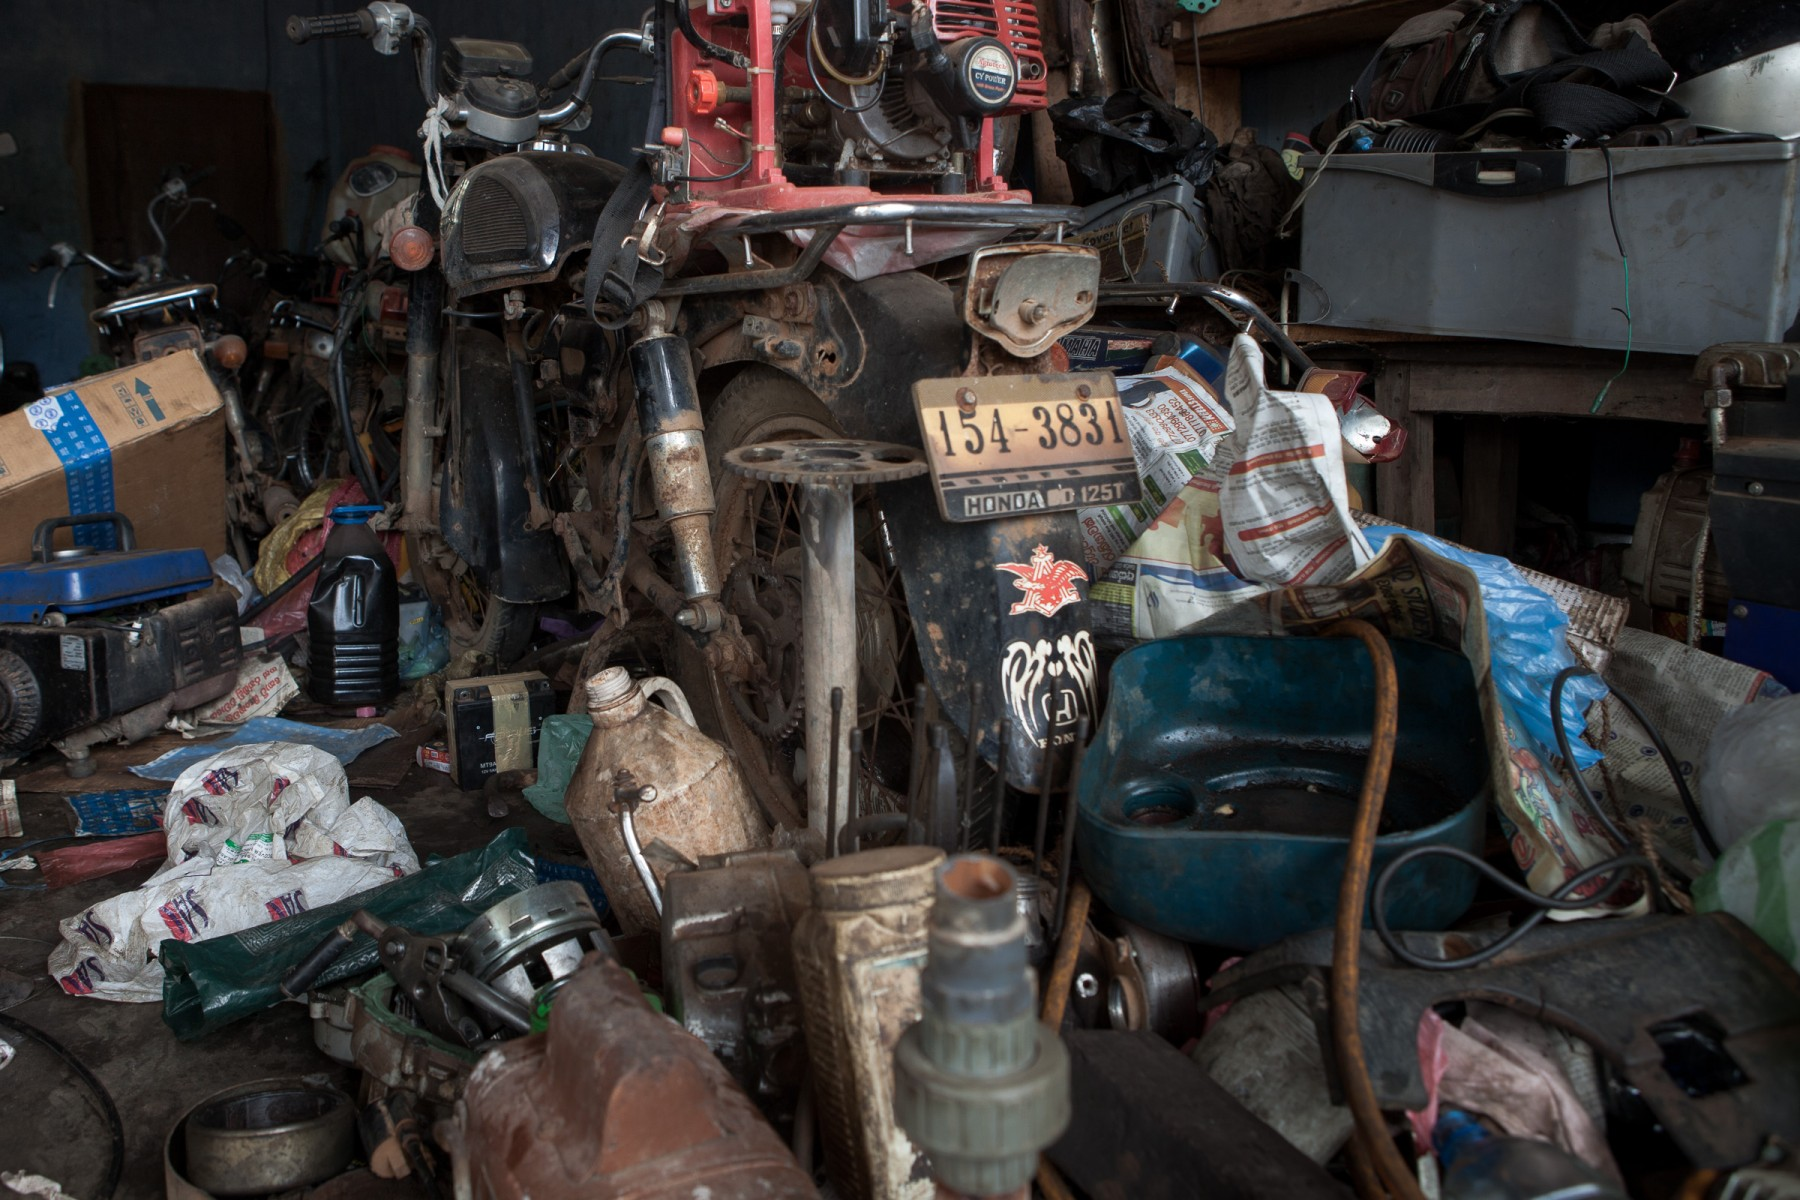 Junk in a motorcycle workshop